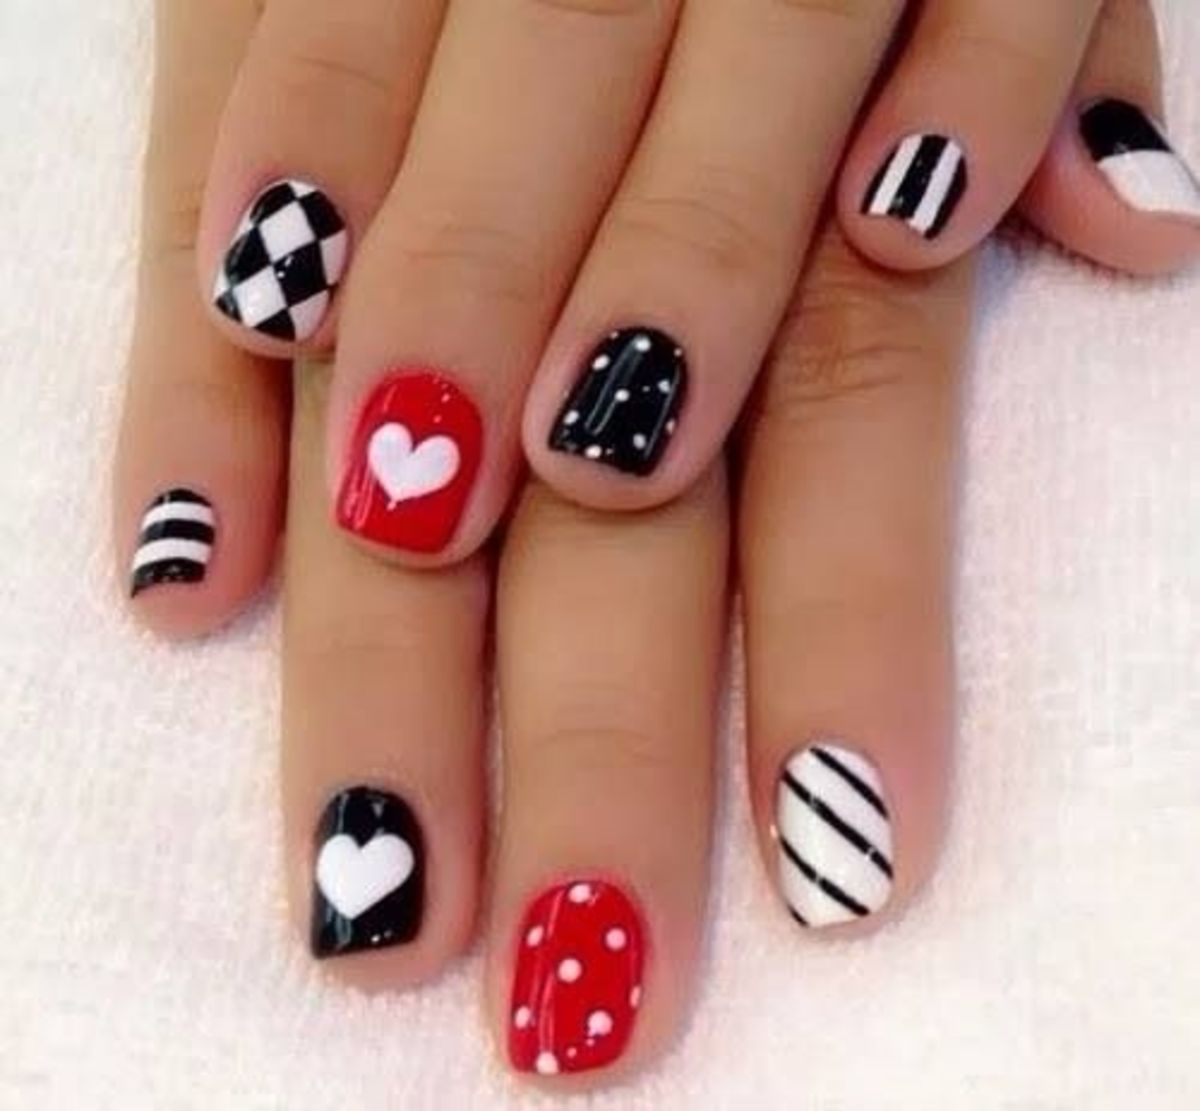 Red, black, and white nails